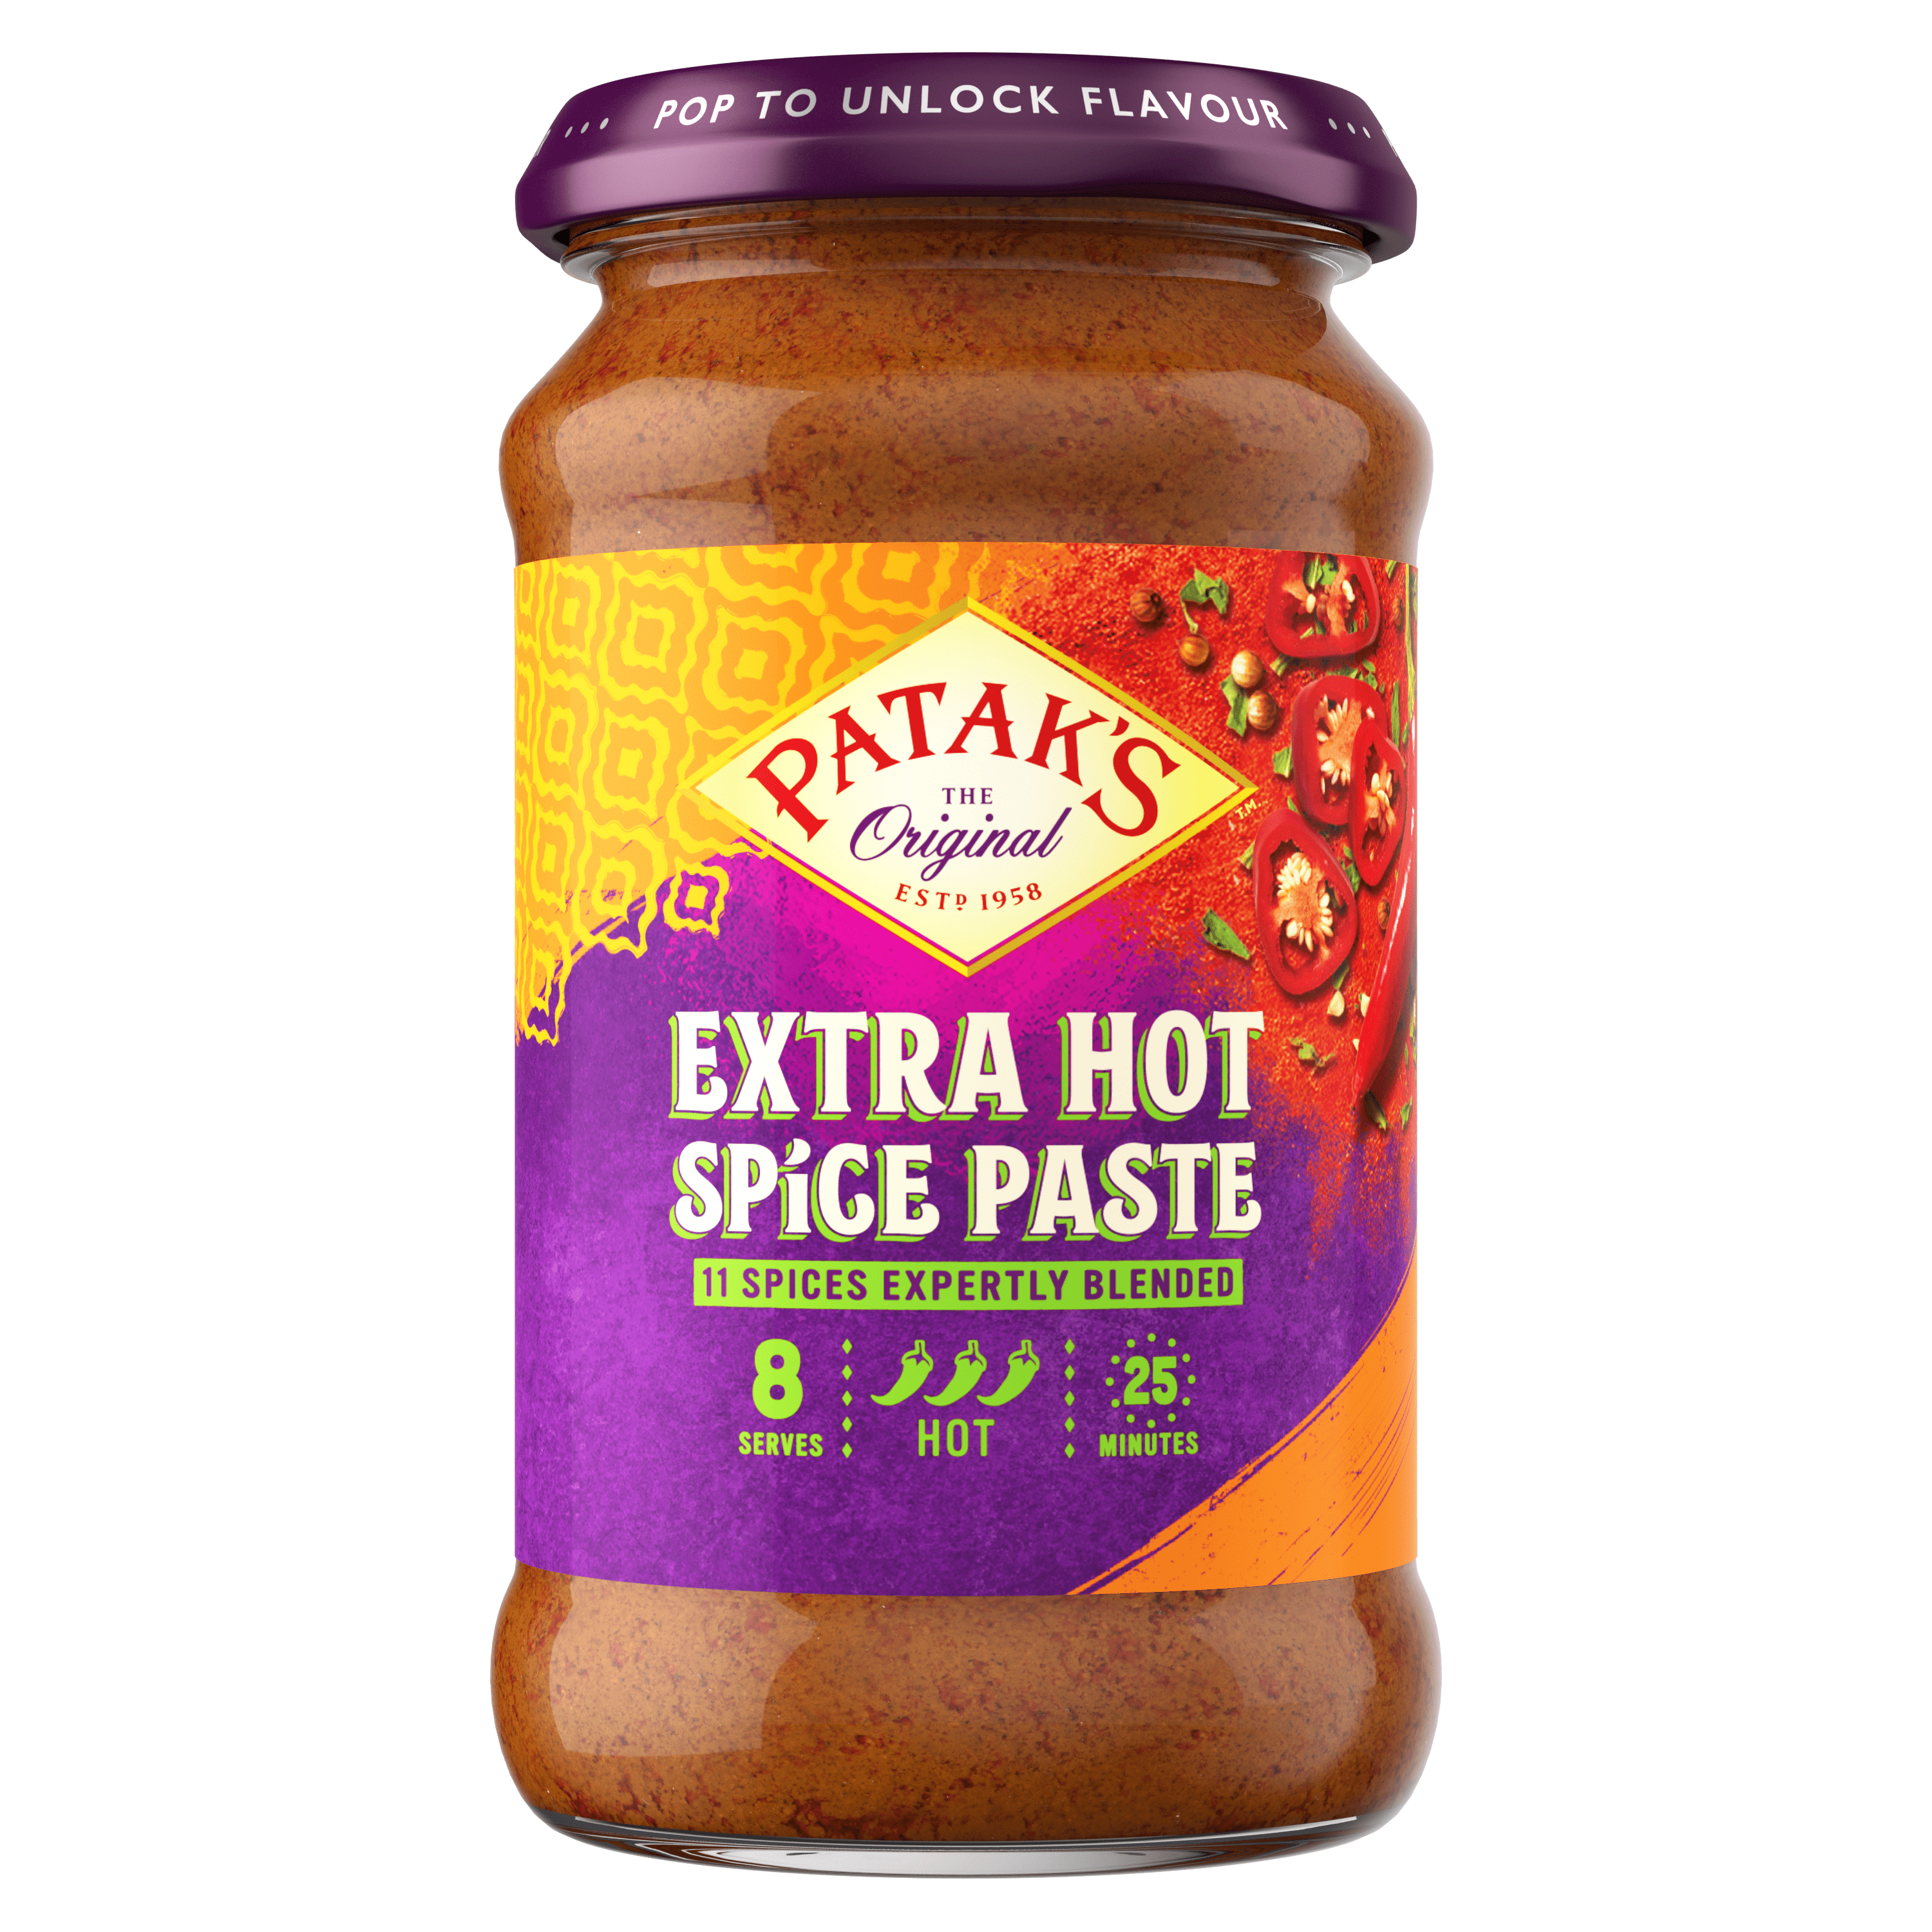 Extra Hot Spice Paste